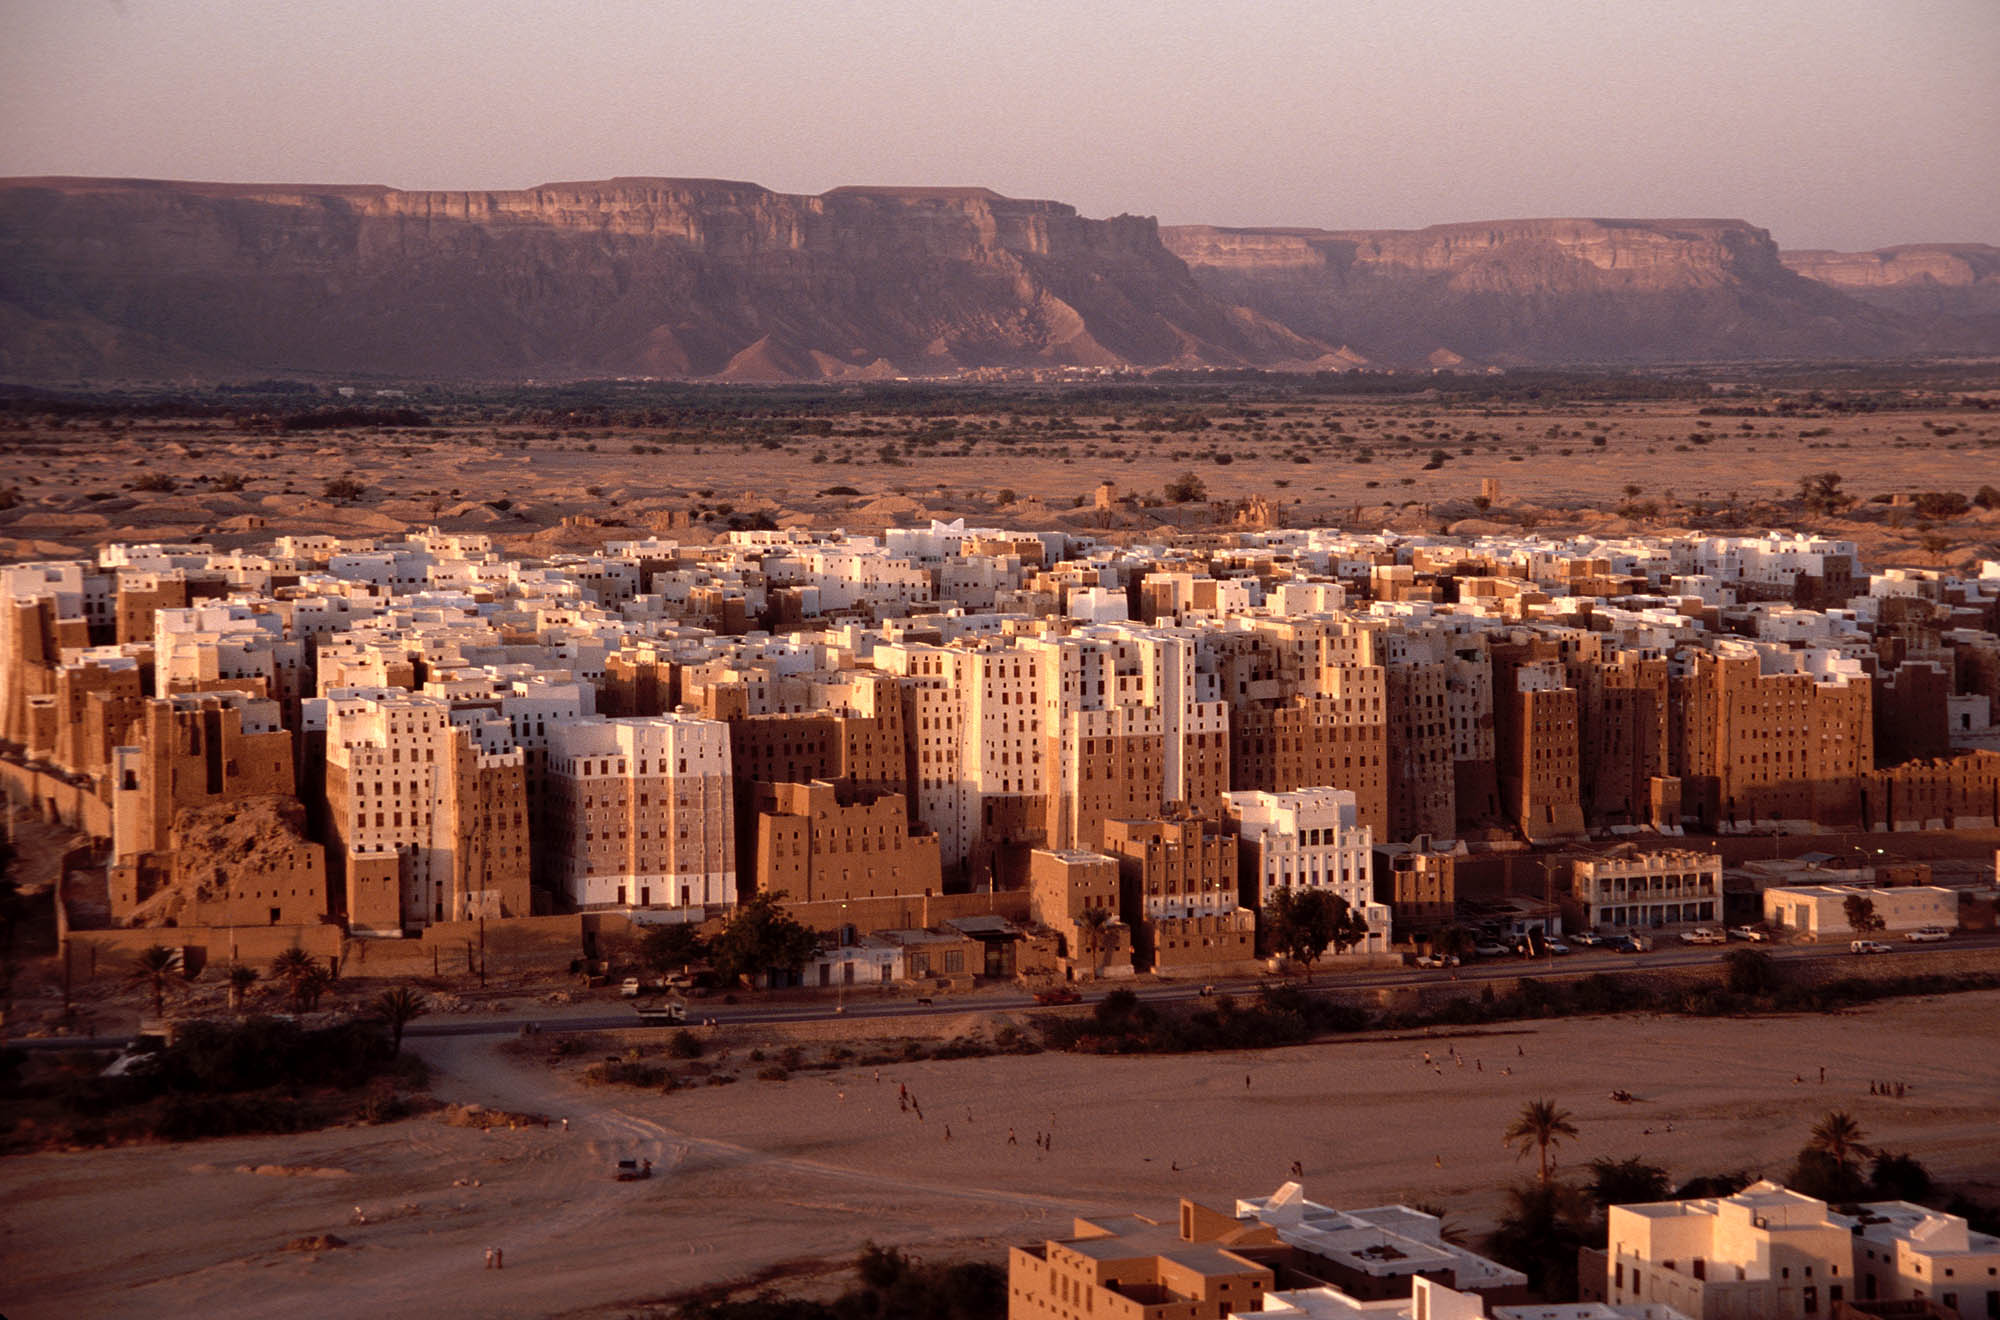 yemen-shibam-the-manhattan-of-the-dese-secret-world